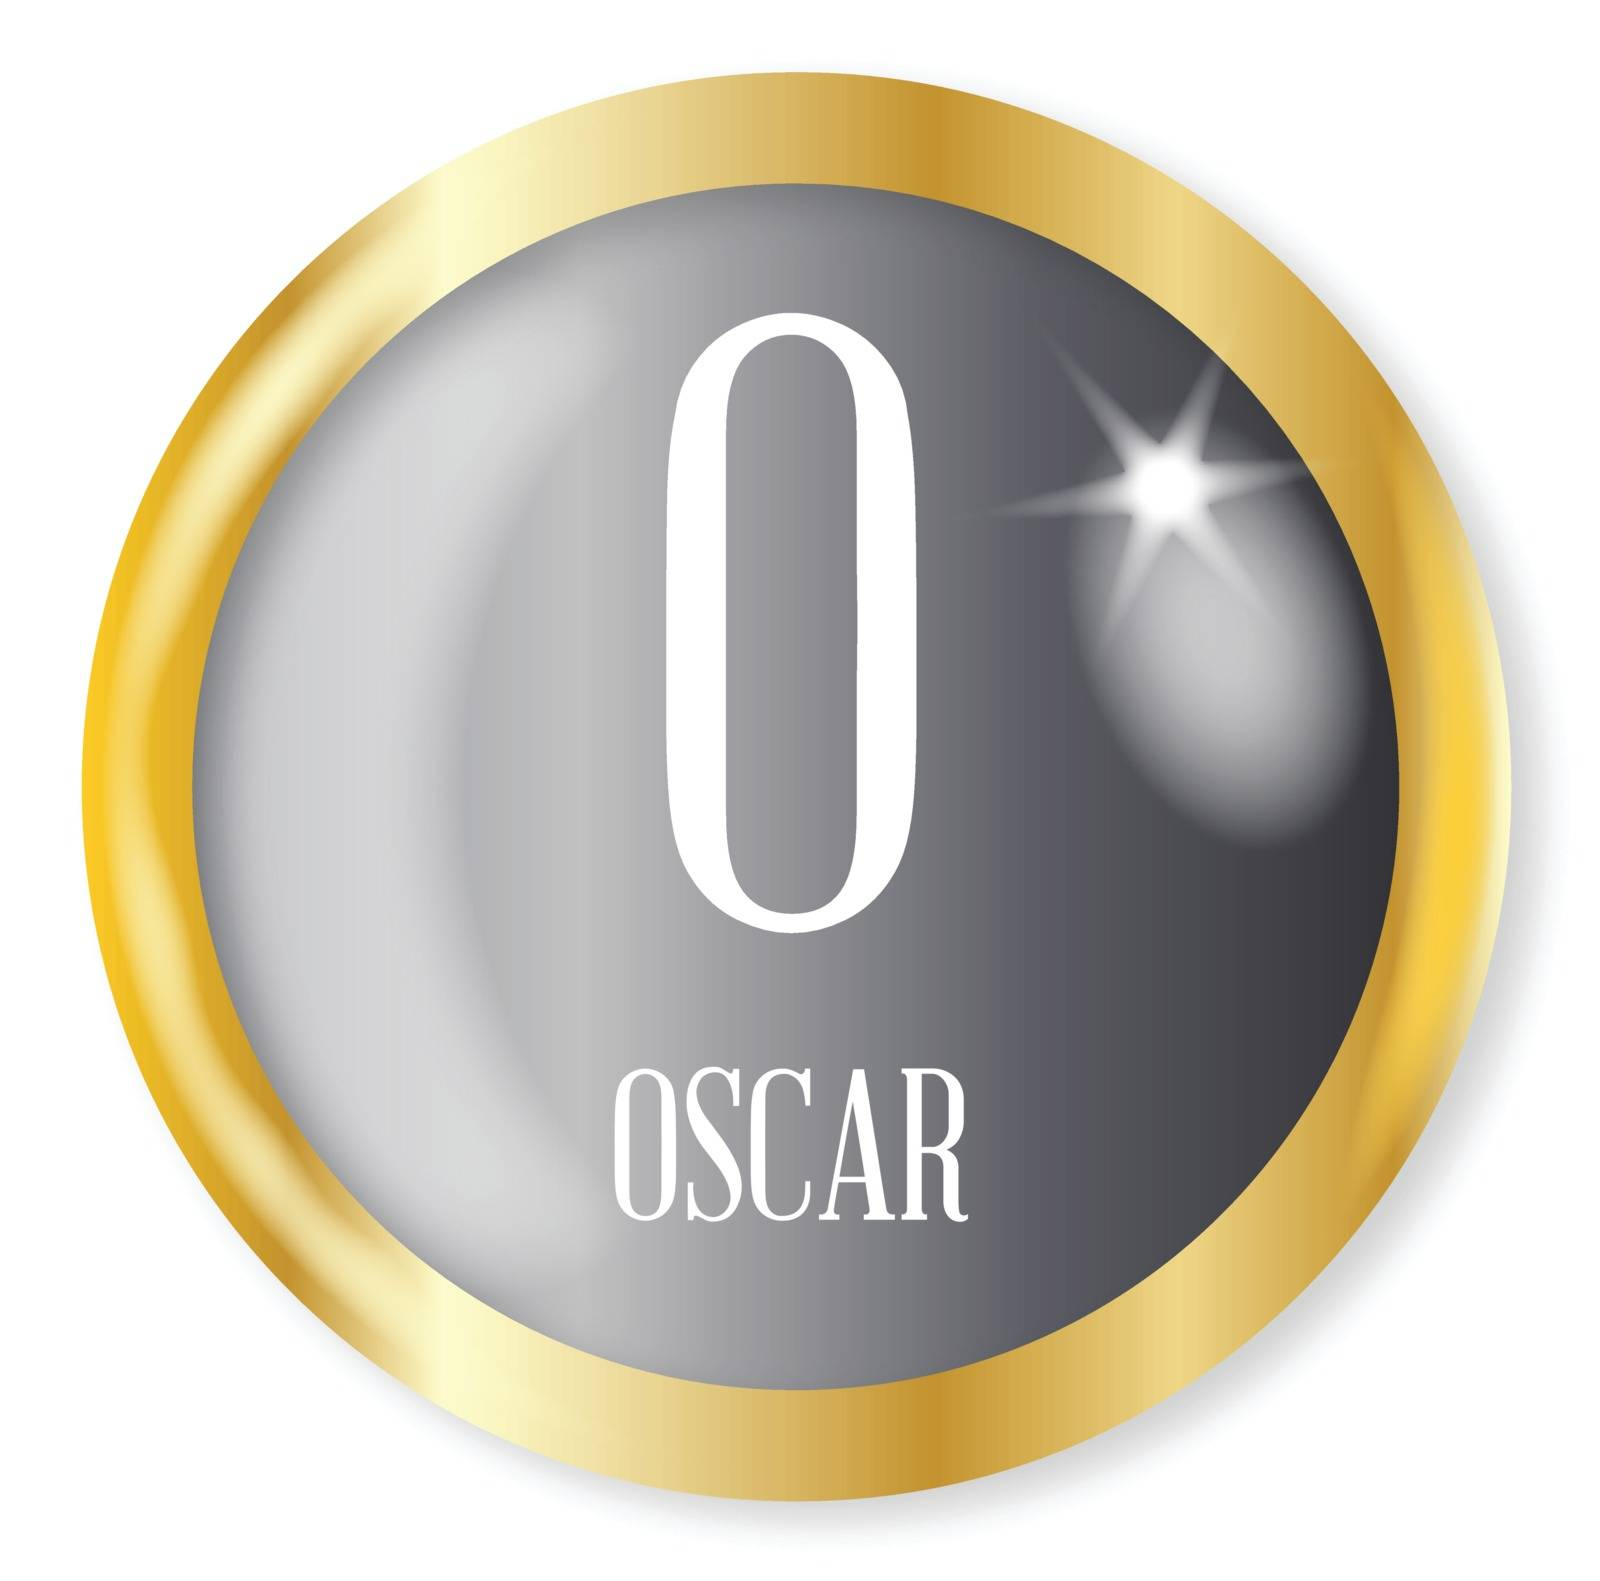 O for Oscarr button from the NATO phonetic alphabet with a gold metal circular border over a white background